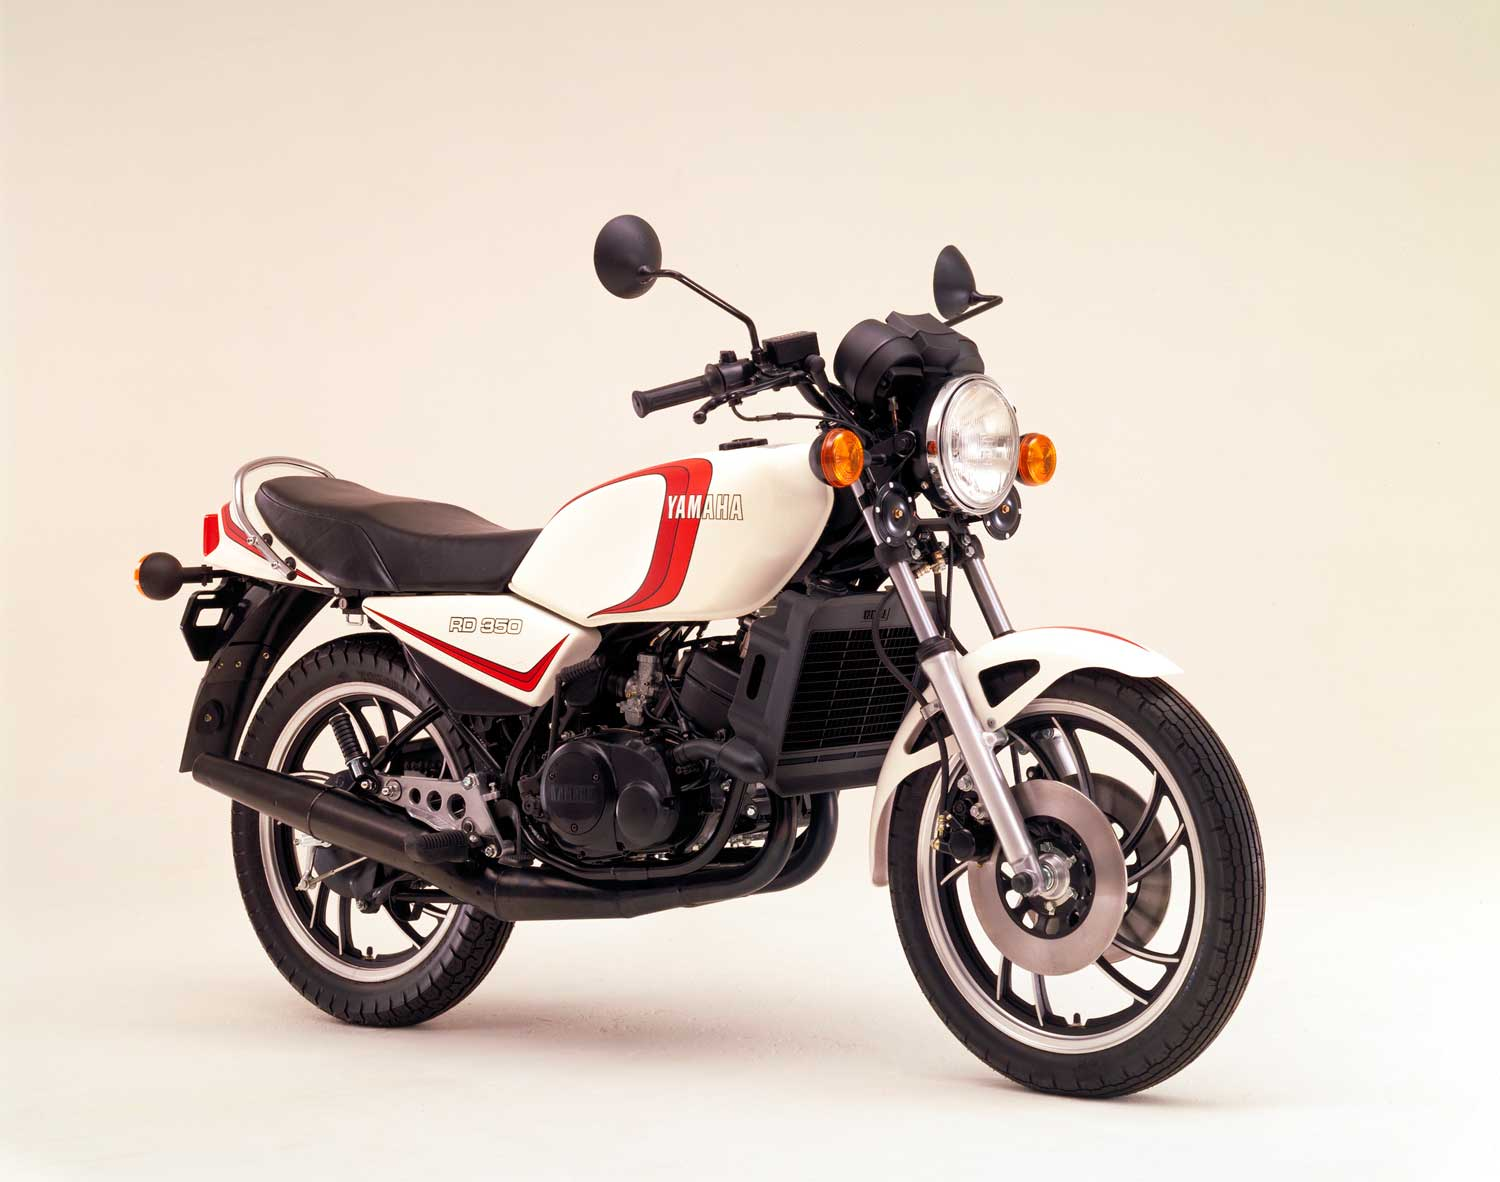 1980_Yamaha-RD350_Photo-Credit_Yamaha-Motor-Co.-Ltd_02